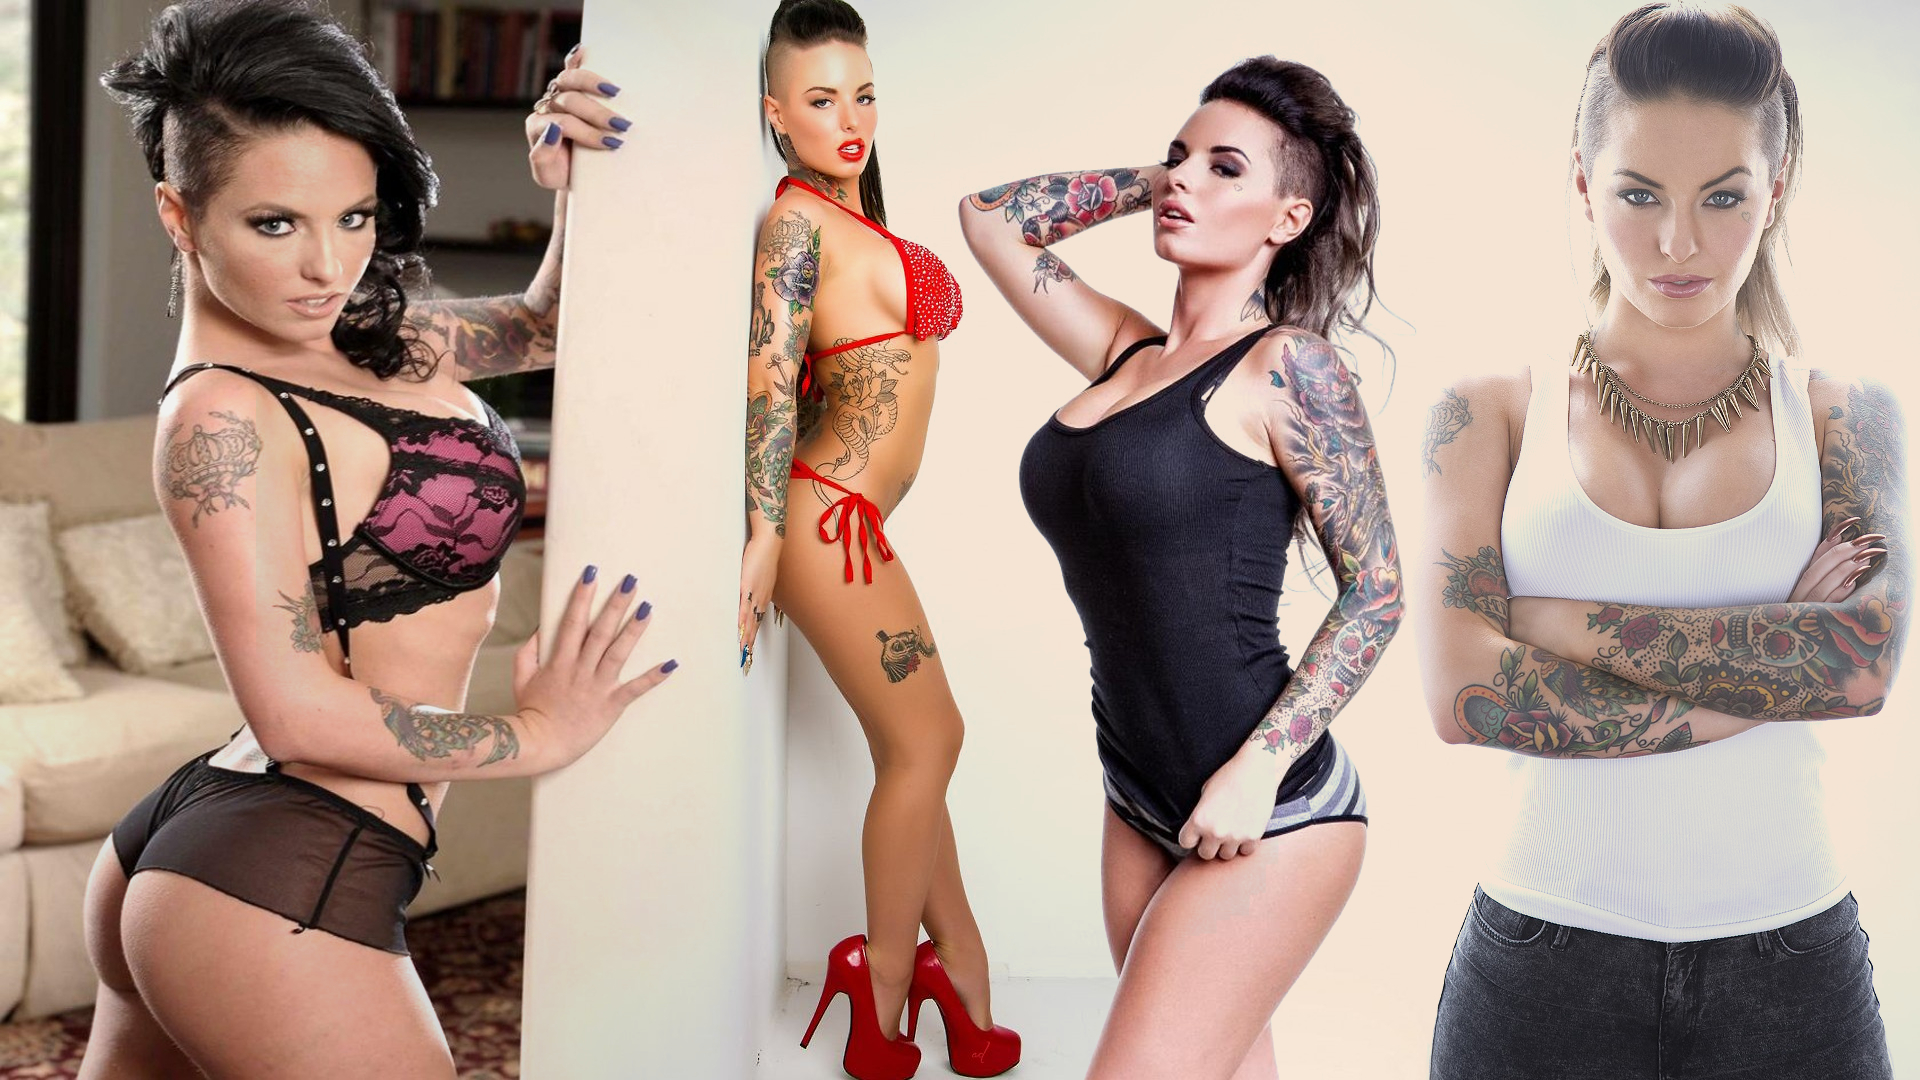 Christy mack full videos-8783